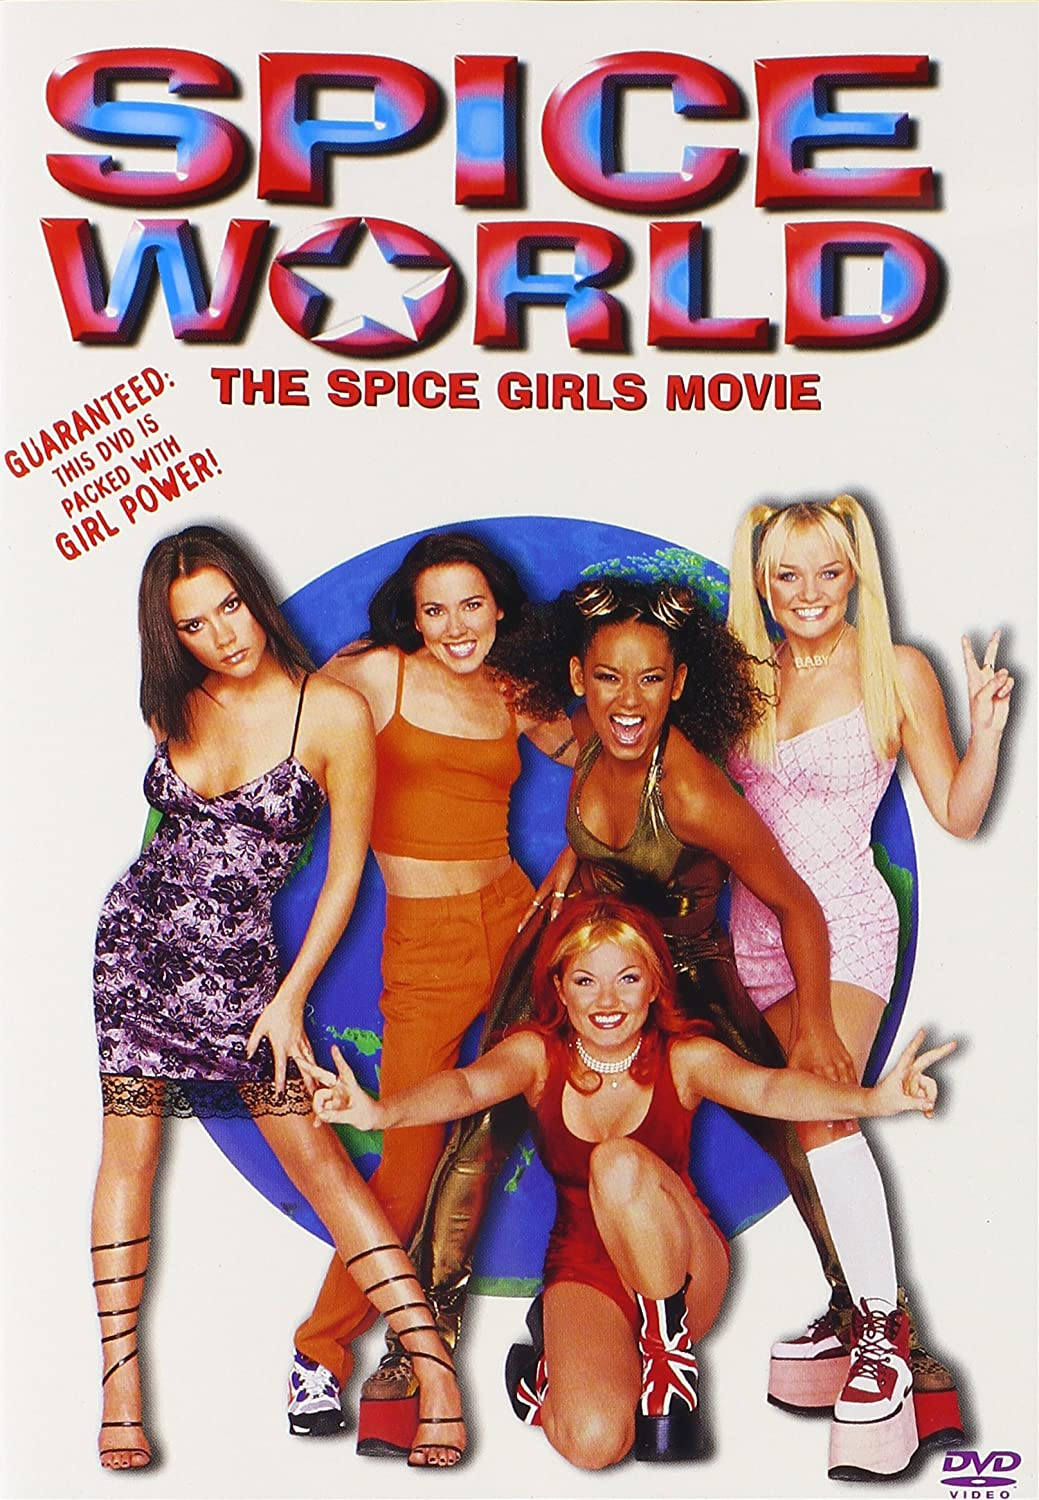 """Spice World"" movie poster, one of our favorite movies that explores female relationships!"